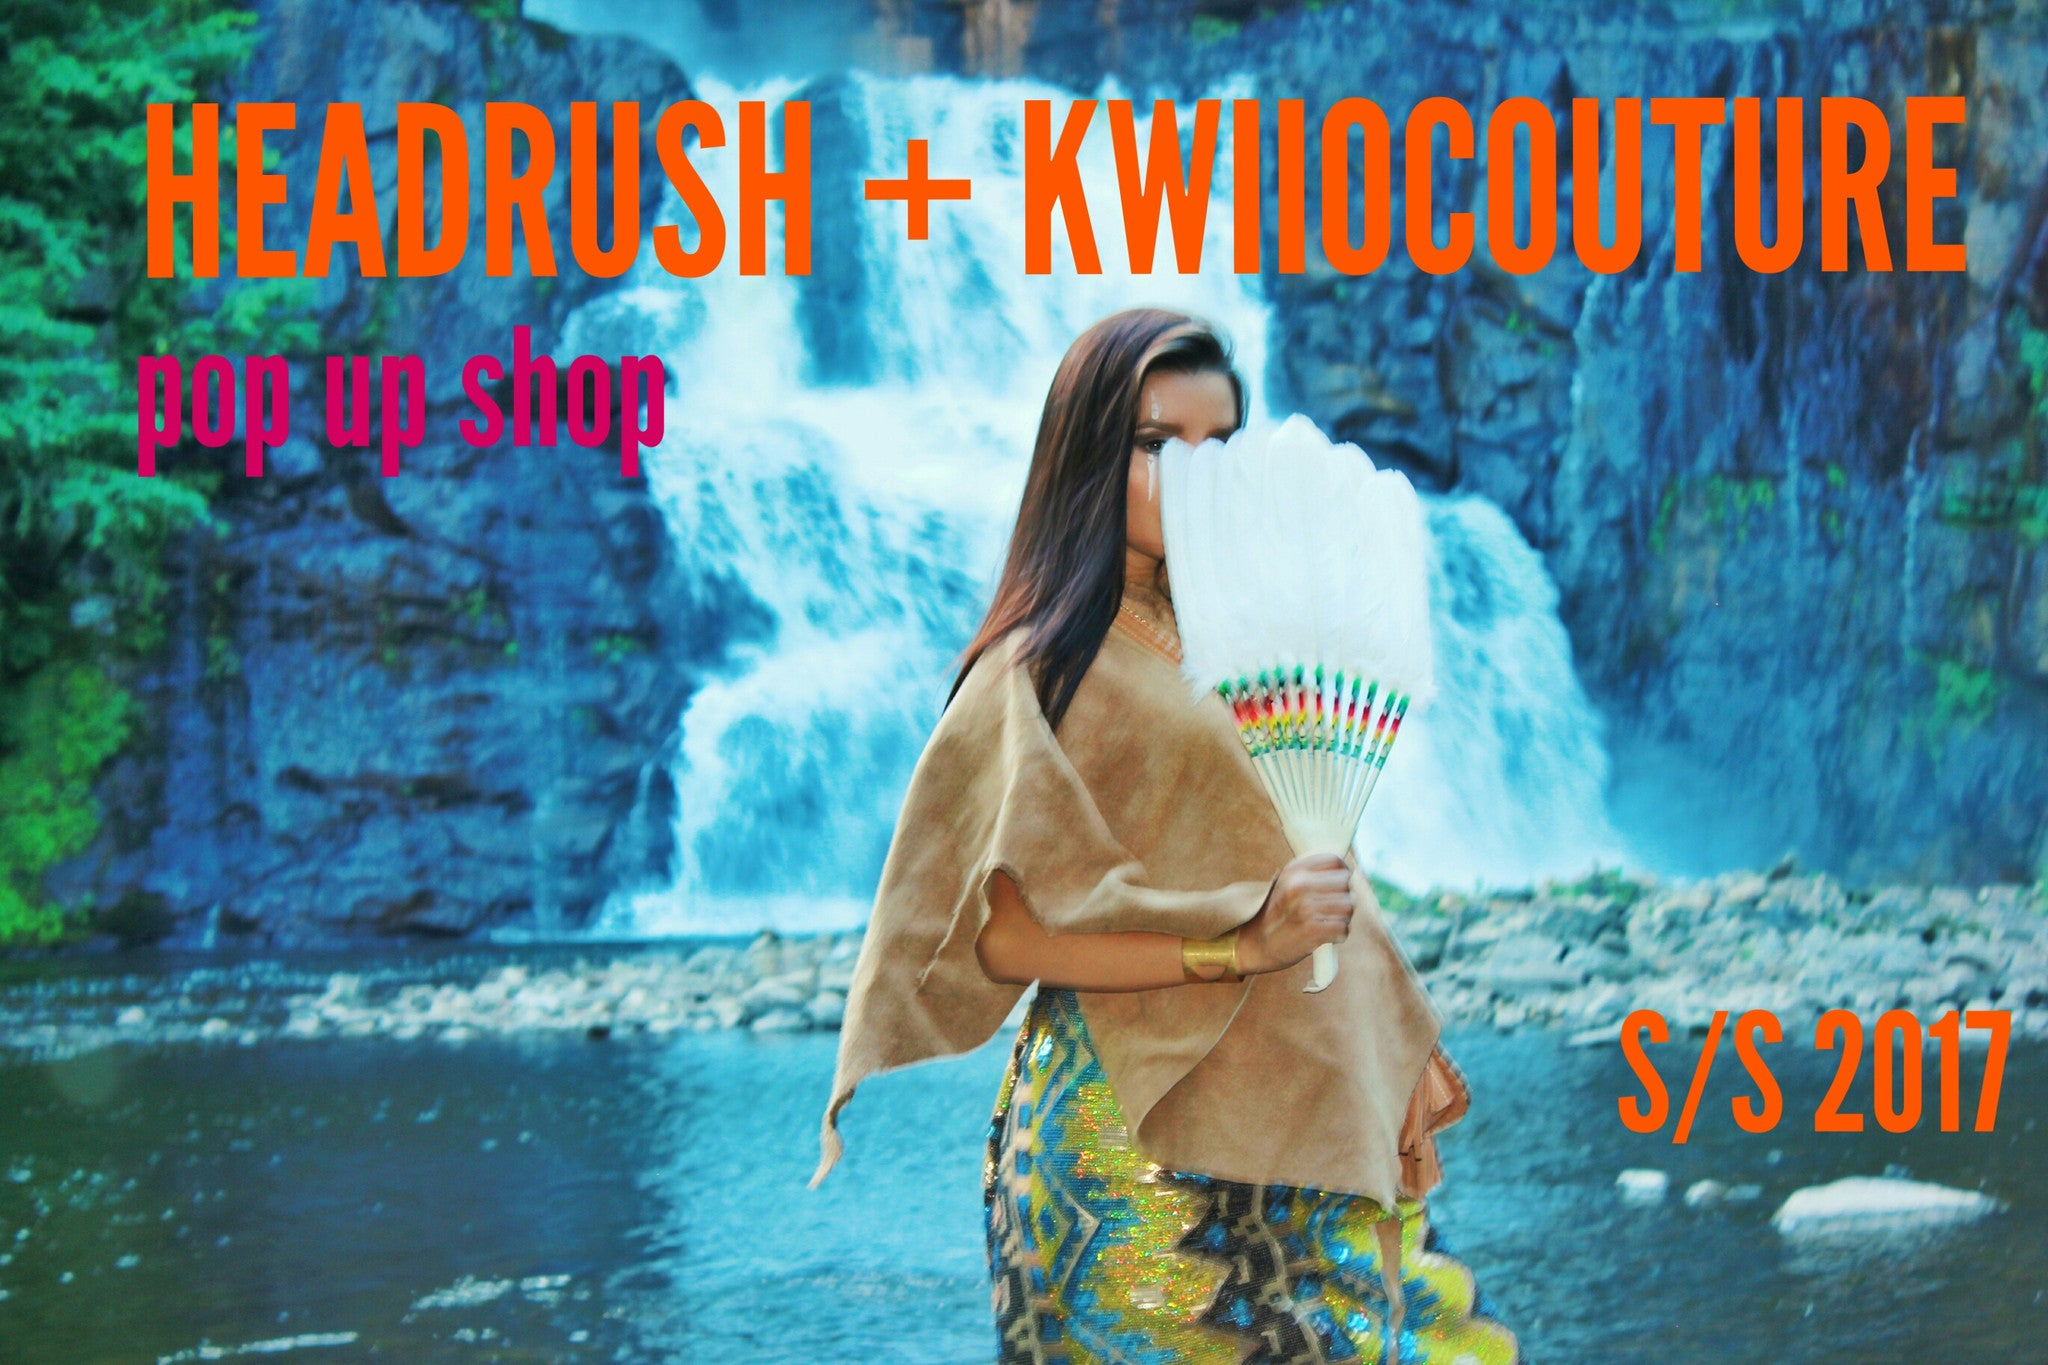 MohawkCoterie presents HeadRush Brand + KwiioCouture